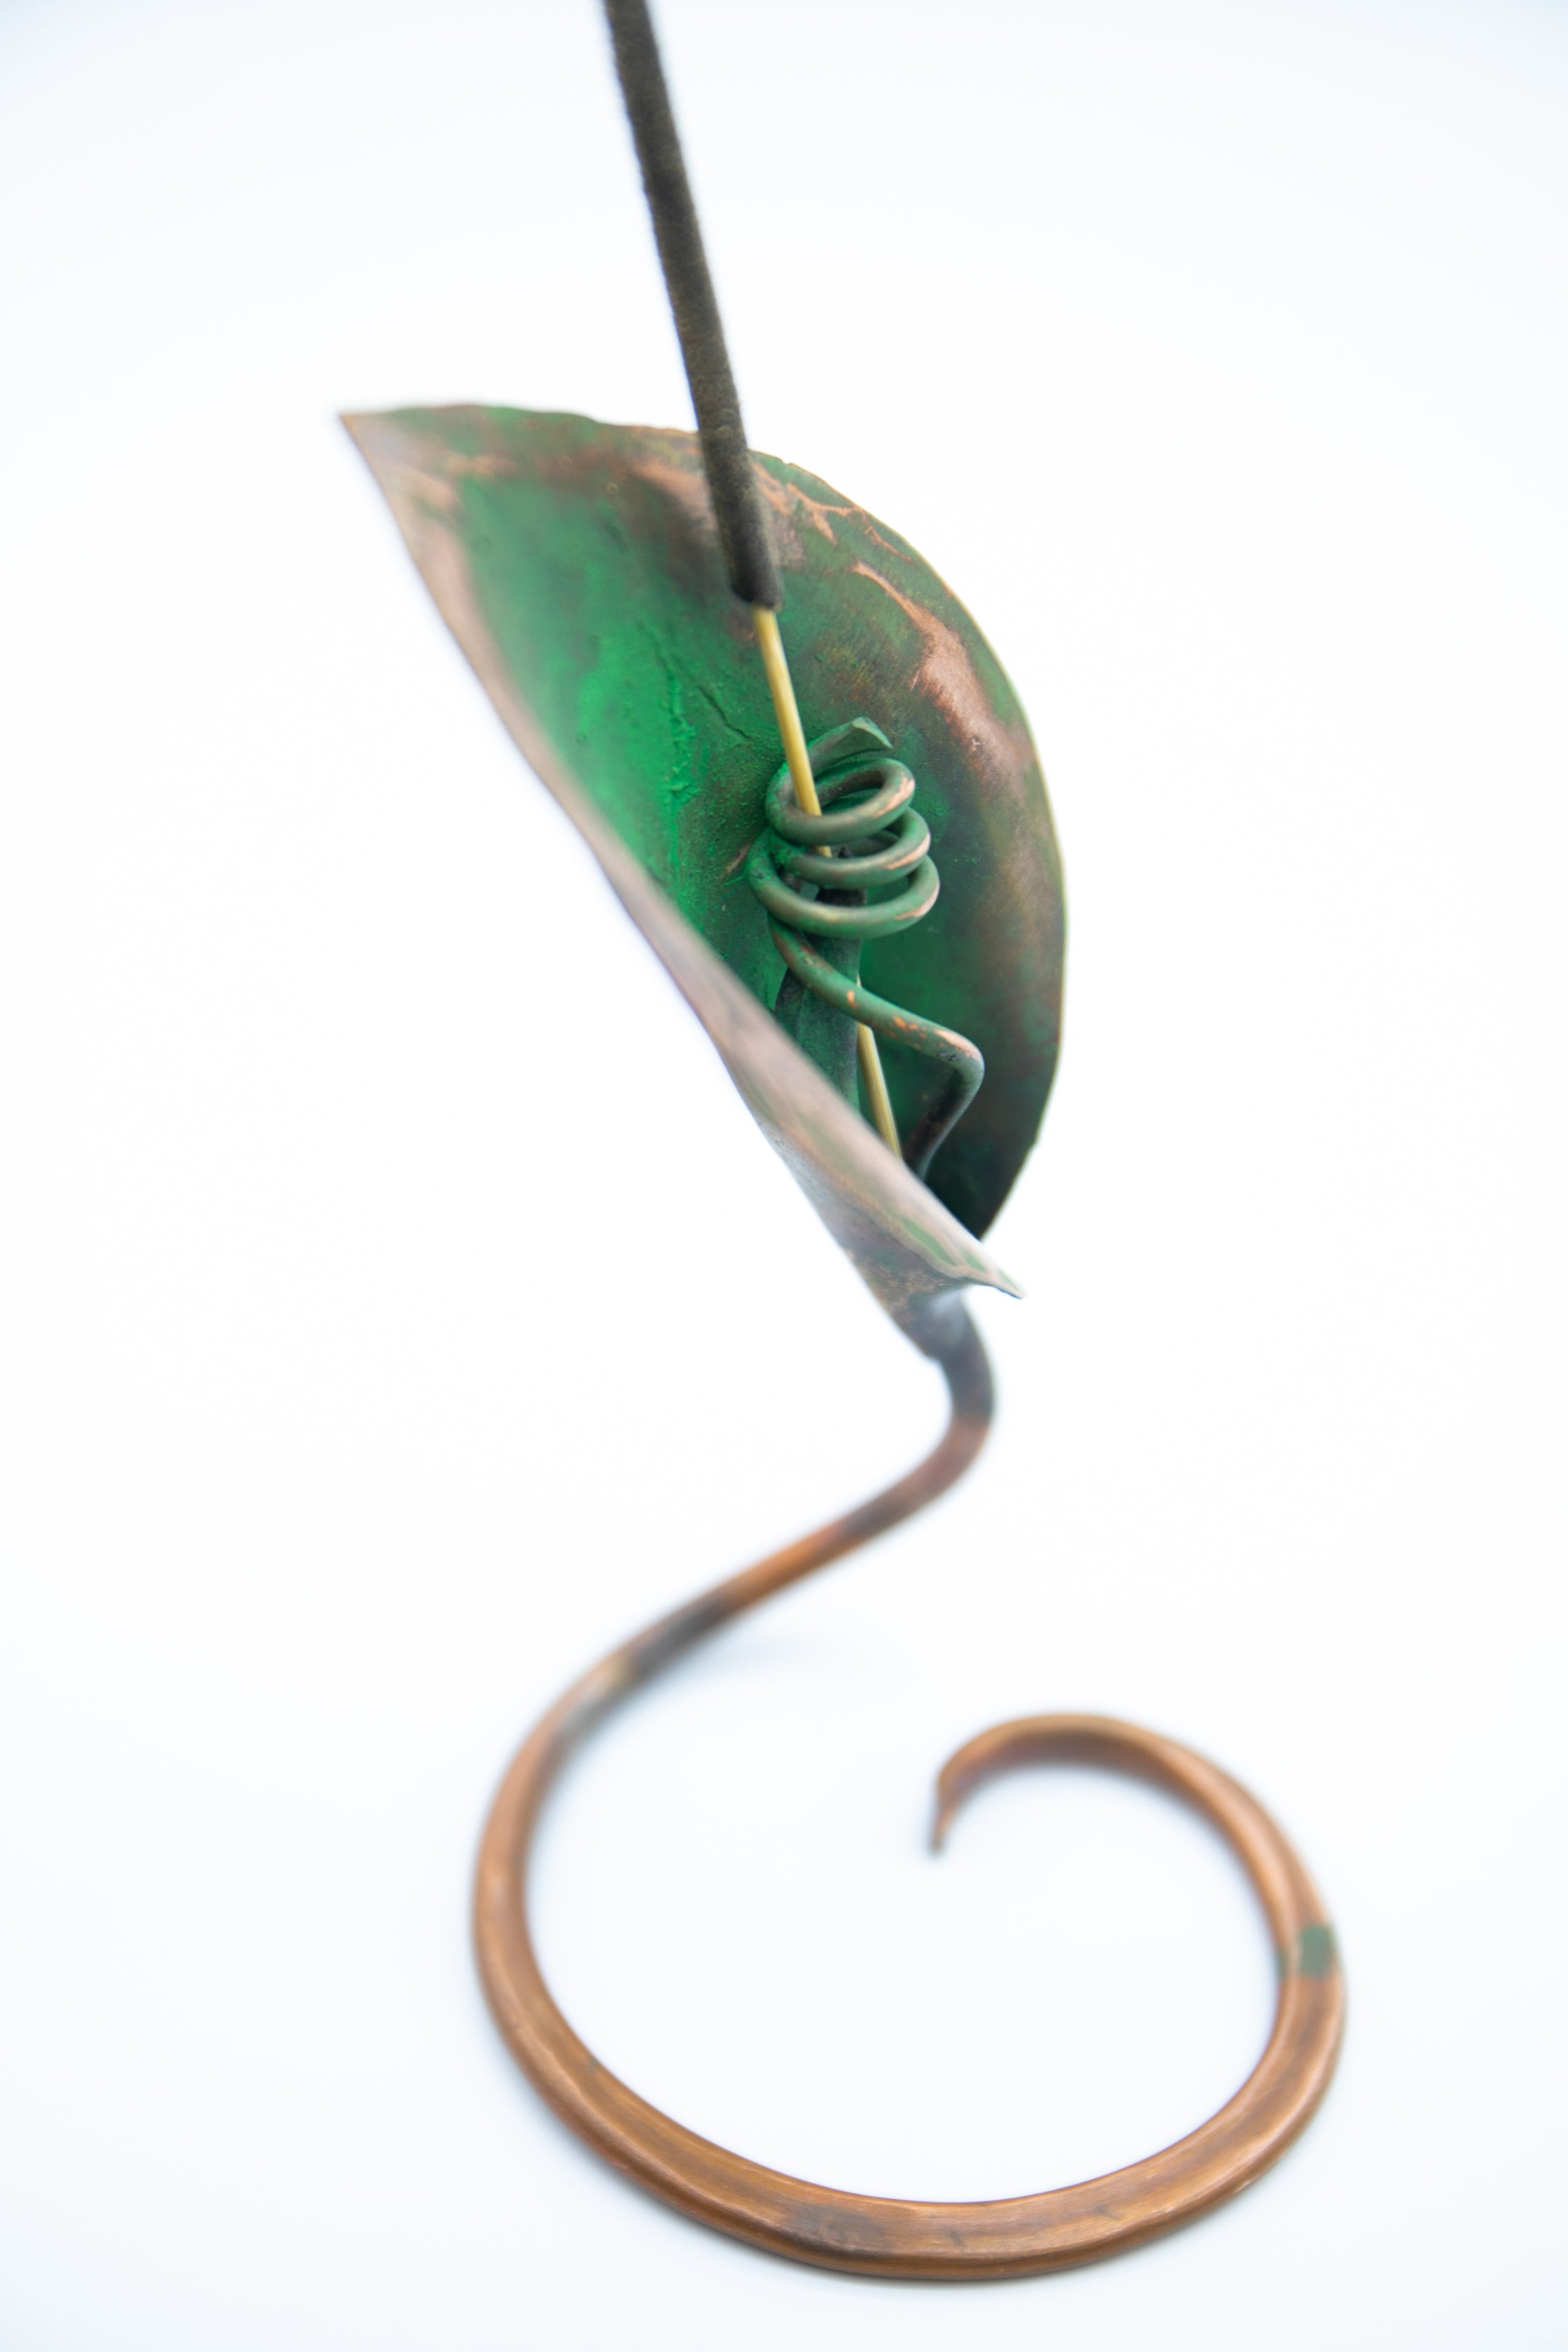 Incense Holder - Handmade Recycled Copper Lily Leaf